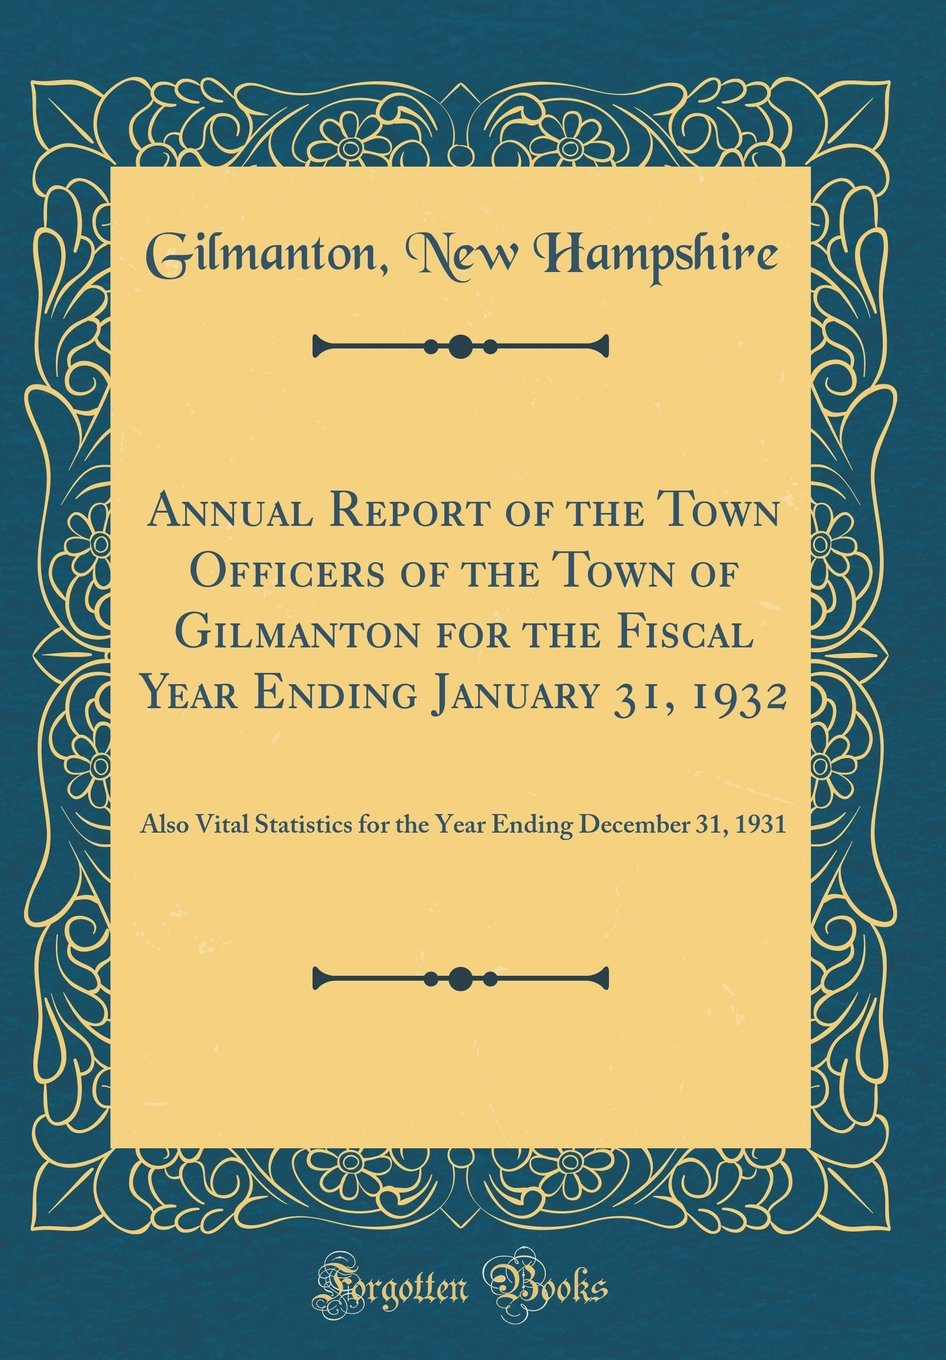 Download Annual Report of the Town Officers of the Town of Gilmanton for the Fiscal Year Ending January 31, 1932: Also Vital Statistics for the Year Ending December 31, 1931 (Classic Reprint) PDF